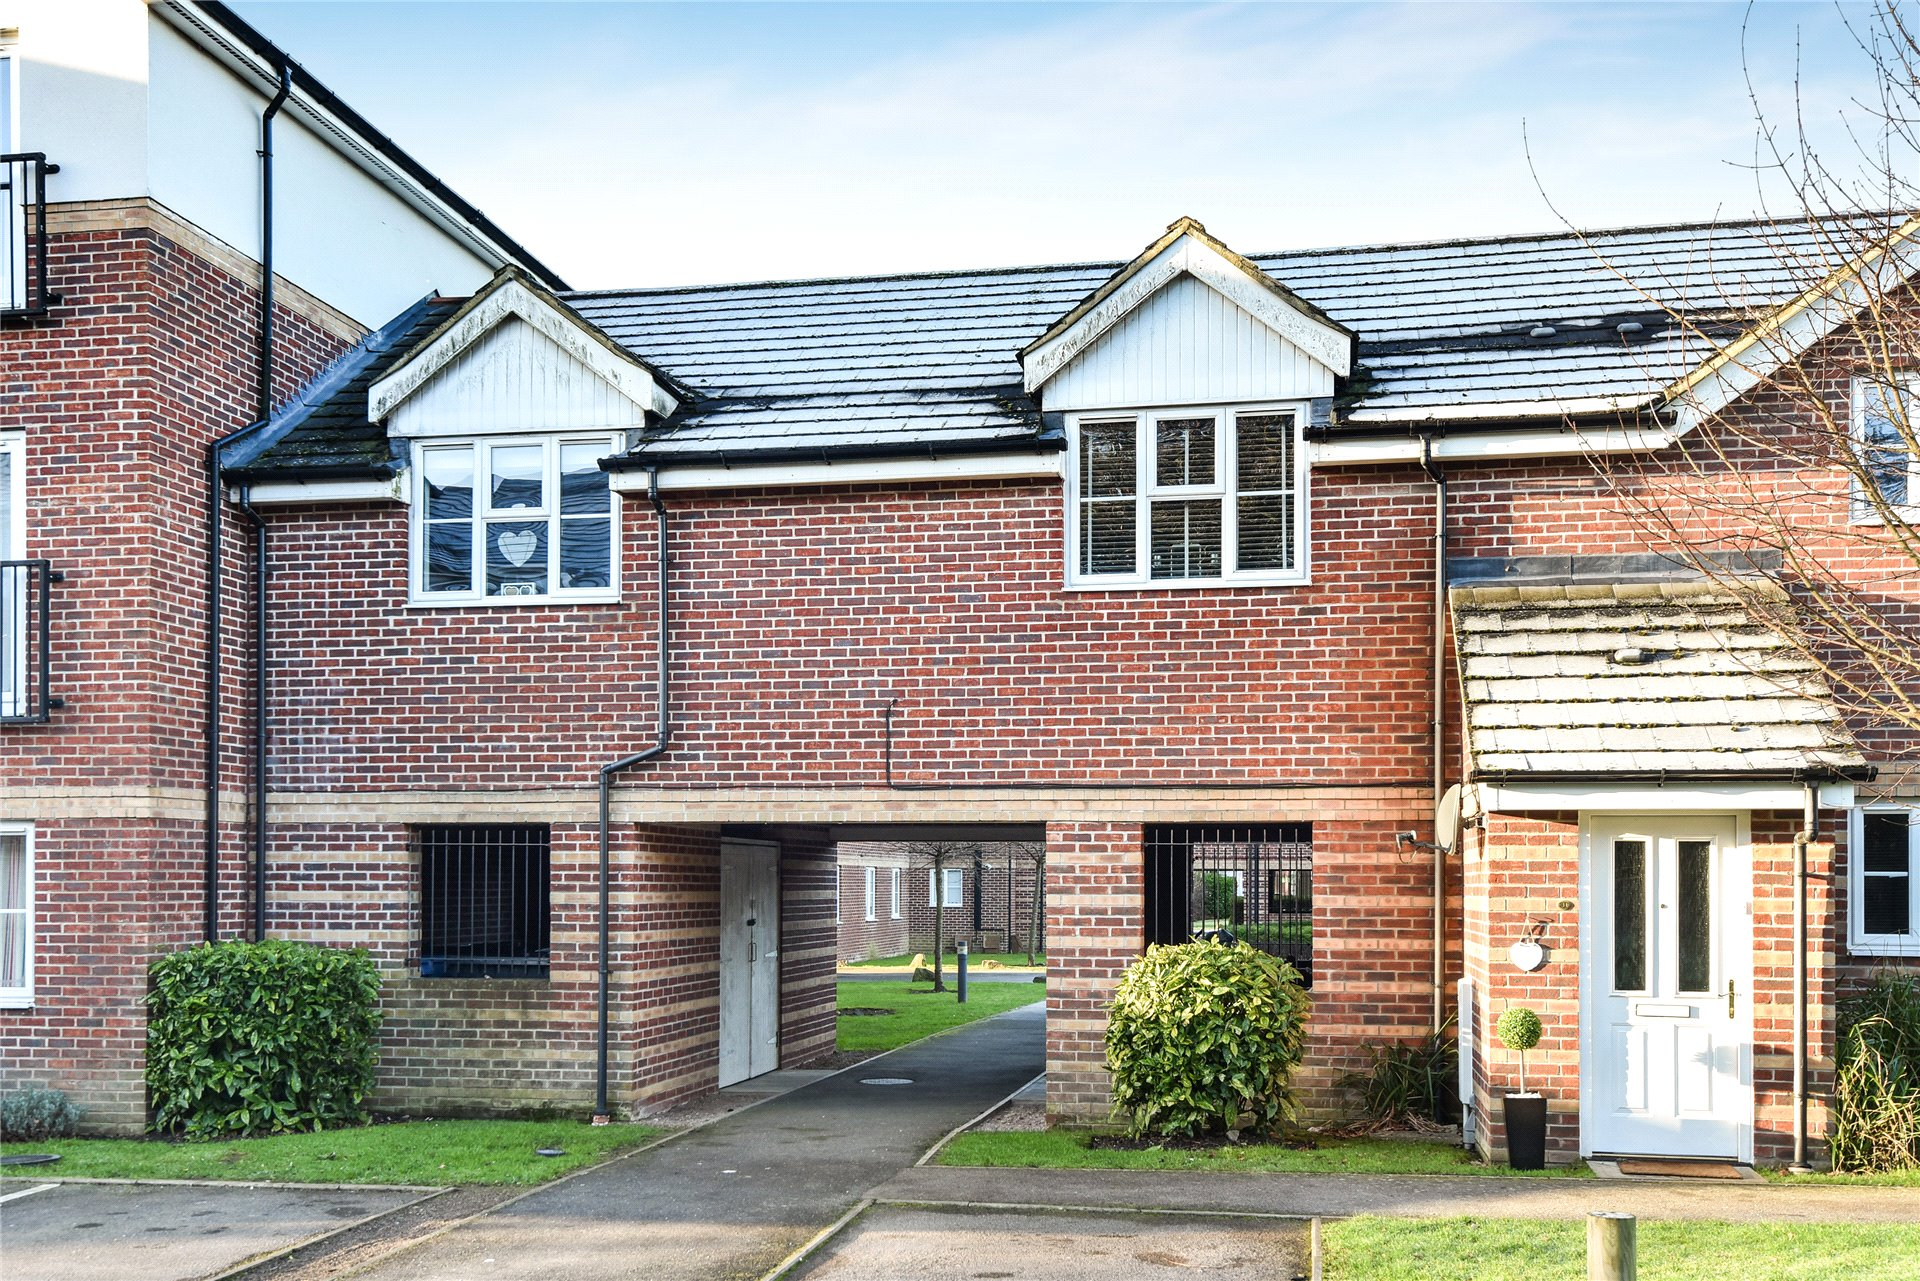 2 Bedrooms Maisonette Flat for sale in Kingswood Close, Camberley, Surrey, GU15